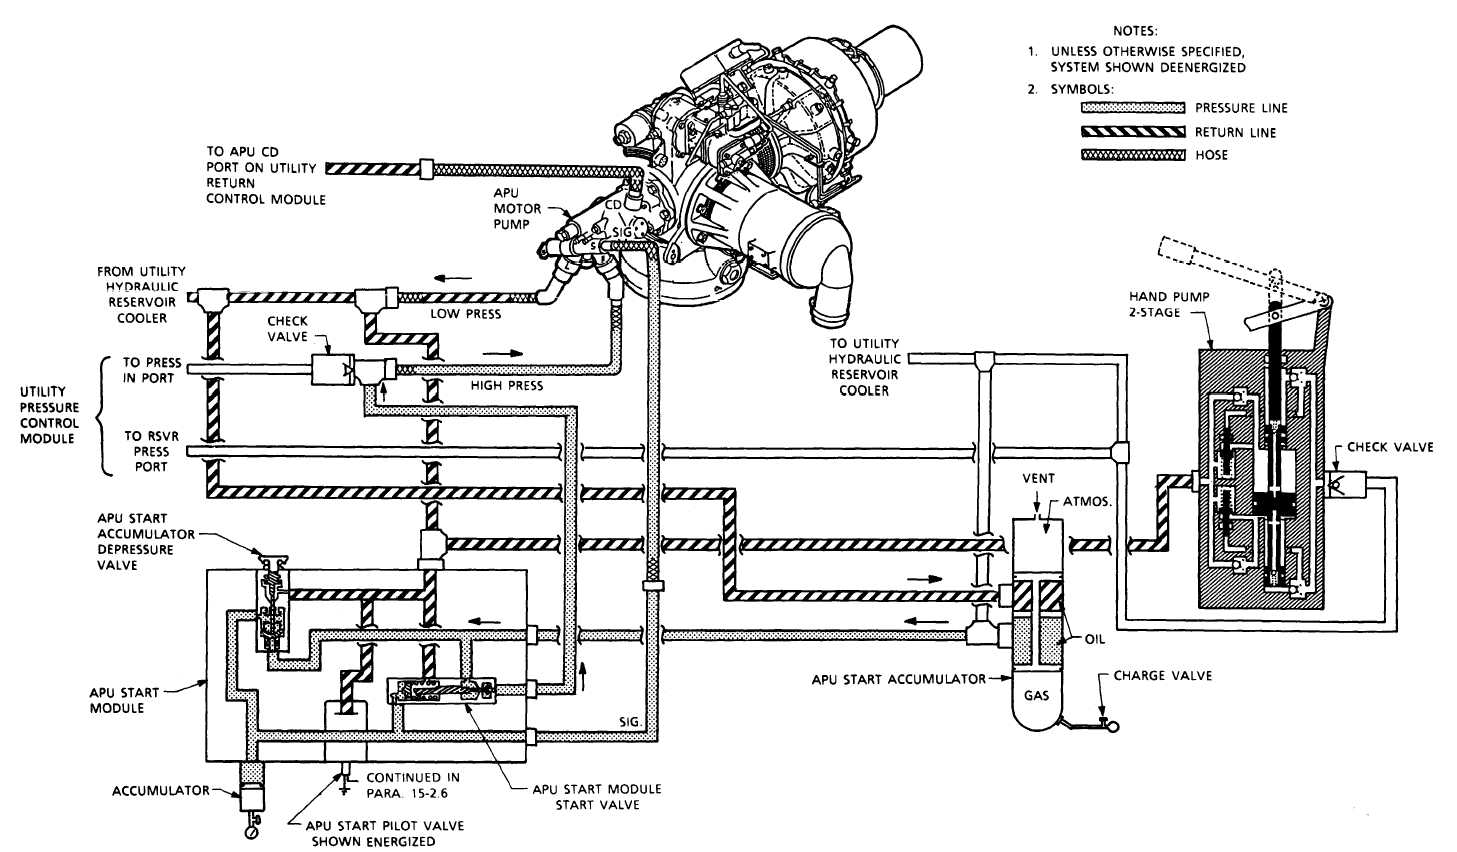 apu hydraulic start motor flow diagramtm         t      apu hydraulic start motor flow diagram      change